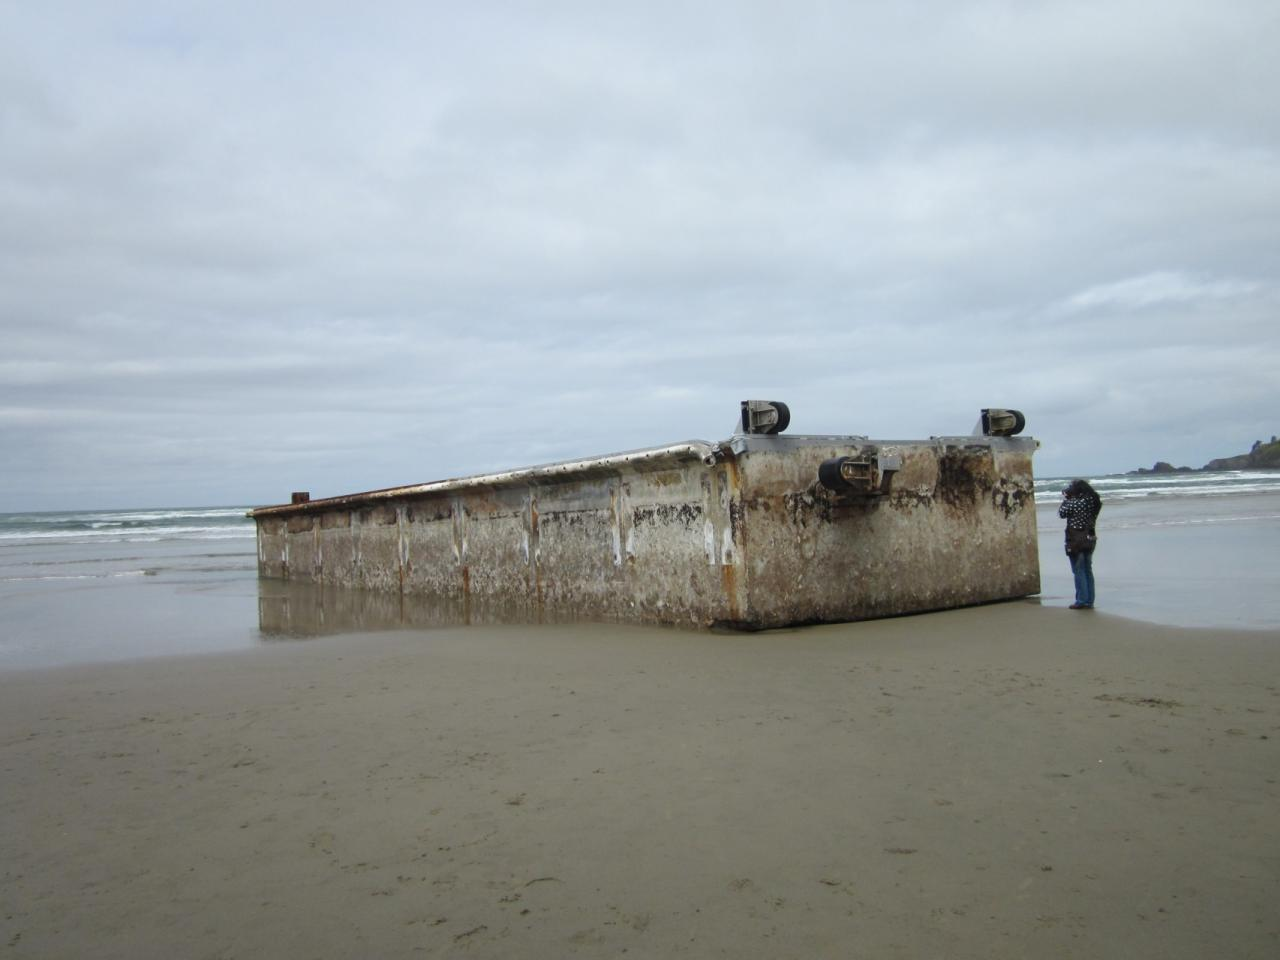 The scraped and sanitized repair dock on Agate Beach at the high tide line.